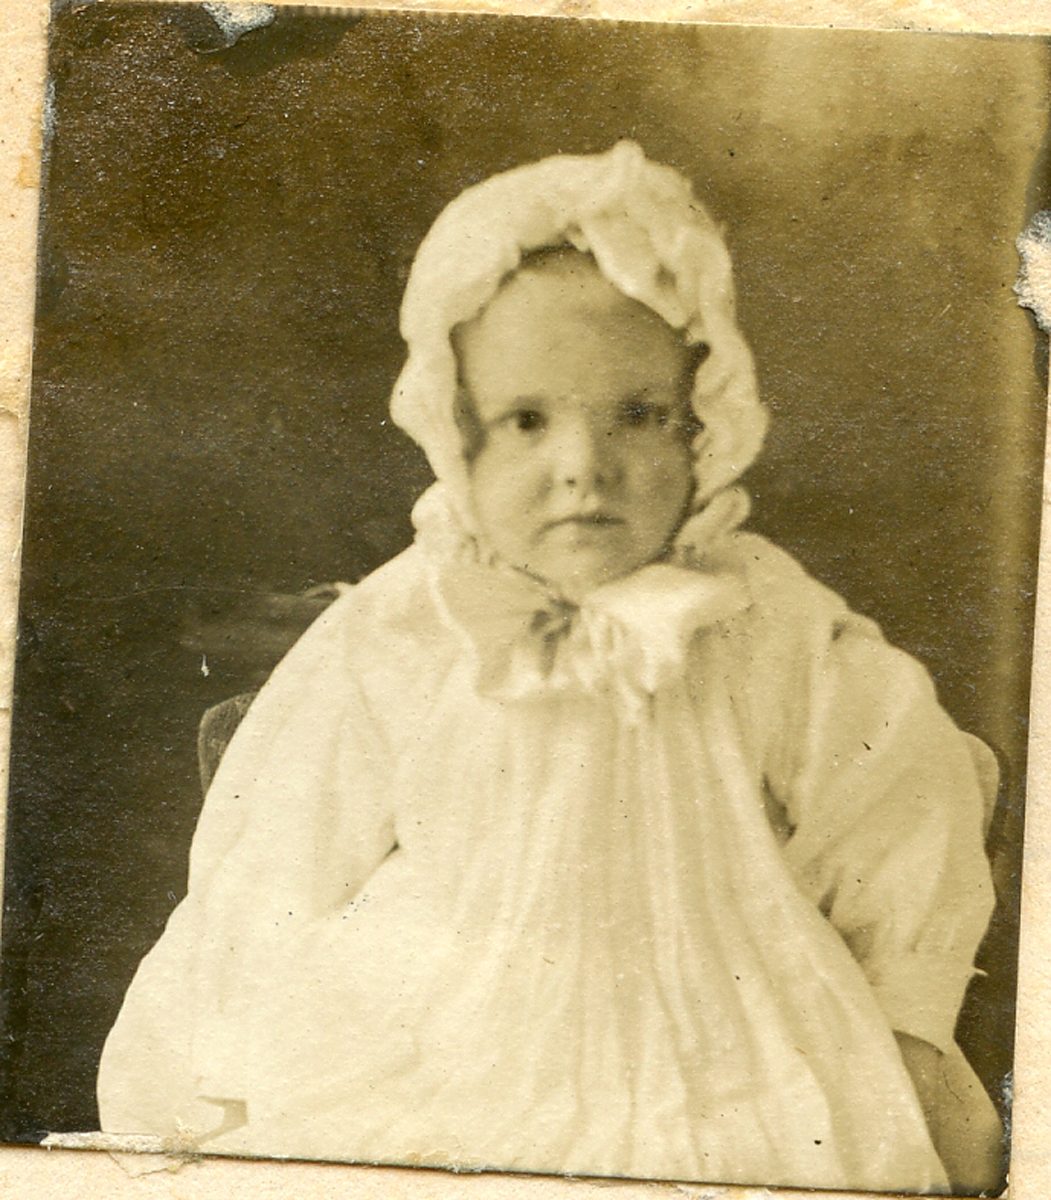 Portrait of Eleanor Lucille Clark as a Baby